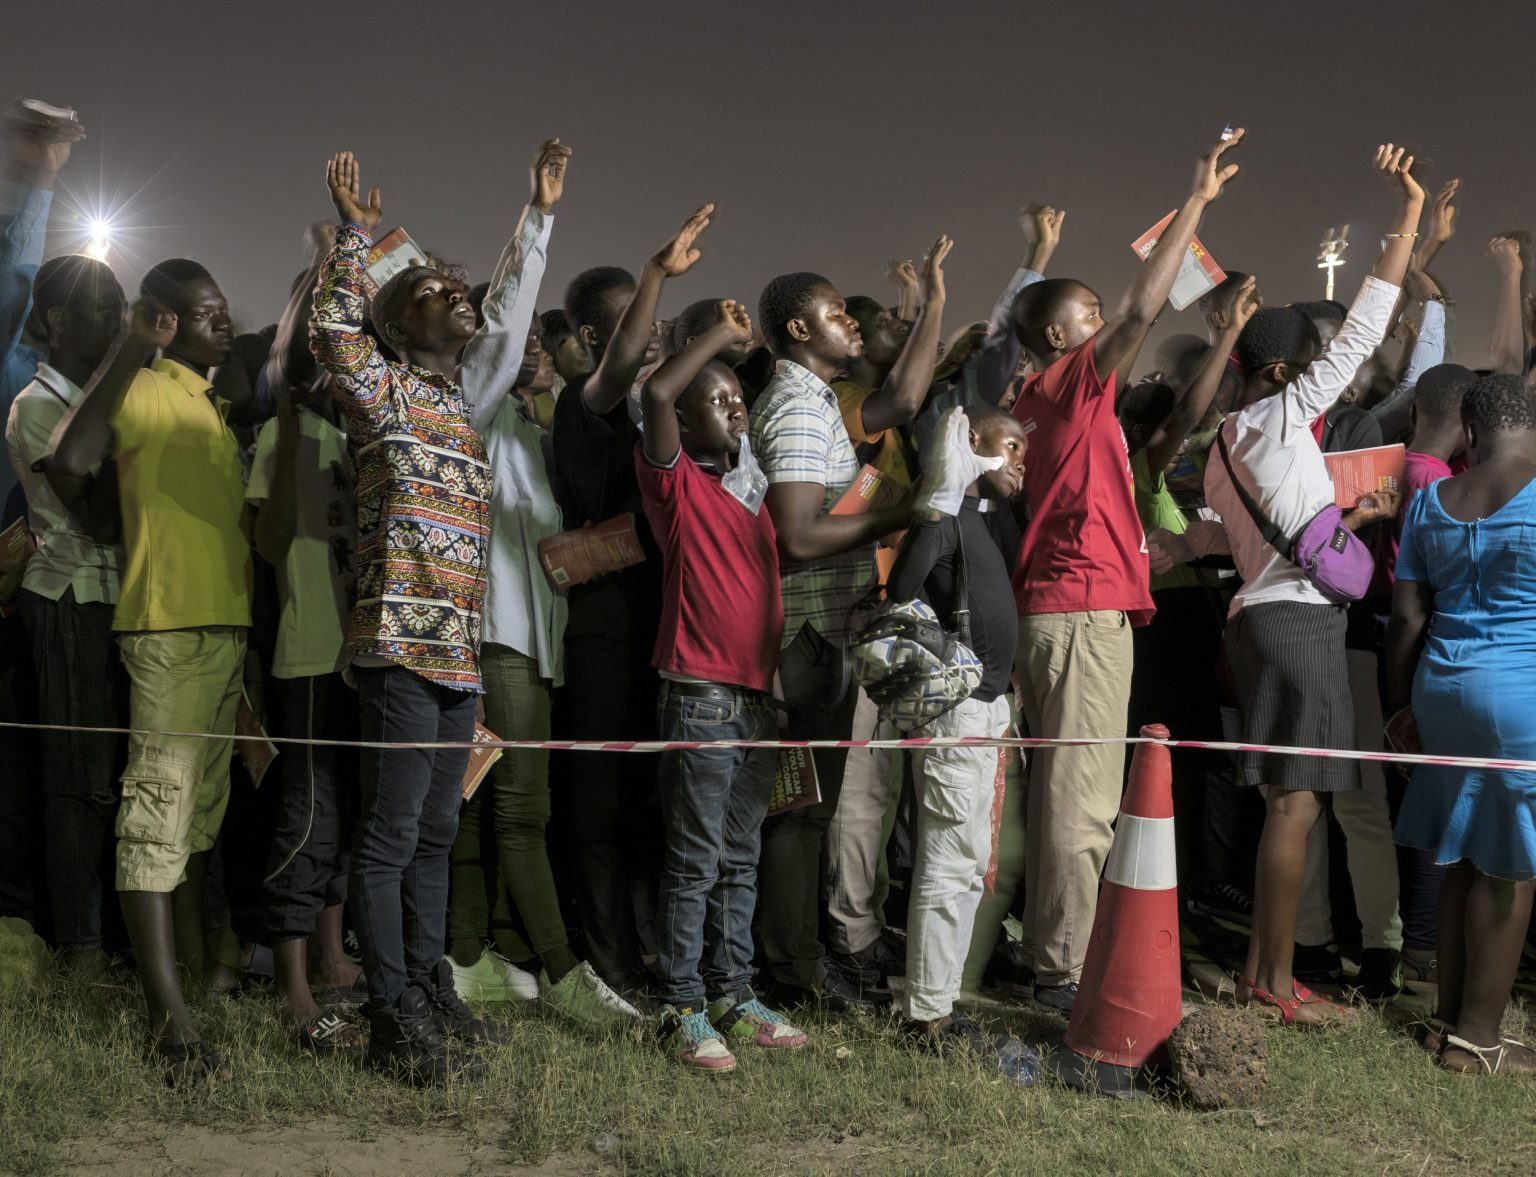 """Young worshipers praying during annual Easter event titled """"Good Friday Miracle Service"""", held in Independence Square by Bishop Dag Heward-Mills. Lighthouse Chapel International (LCI), founded in 1988 by Dag Heward-Mills  is considered to be one of the leading charismatic churches in Ghana, and has over 3000 branches in more than 50 countries. Lighthouse Chapel International is one of the largest of the Pentecostal churches that have appeared since the late 1970s in cities in Africa. Its founder is nowadays considered among the richest pastors in the country. Accra, Republic of Ghana, 2019"""